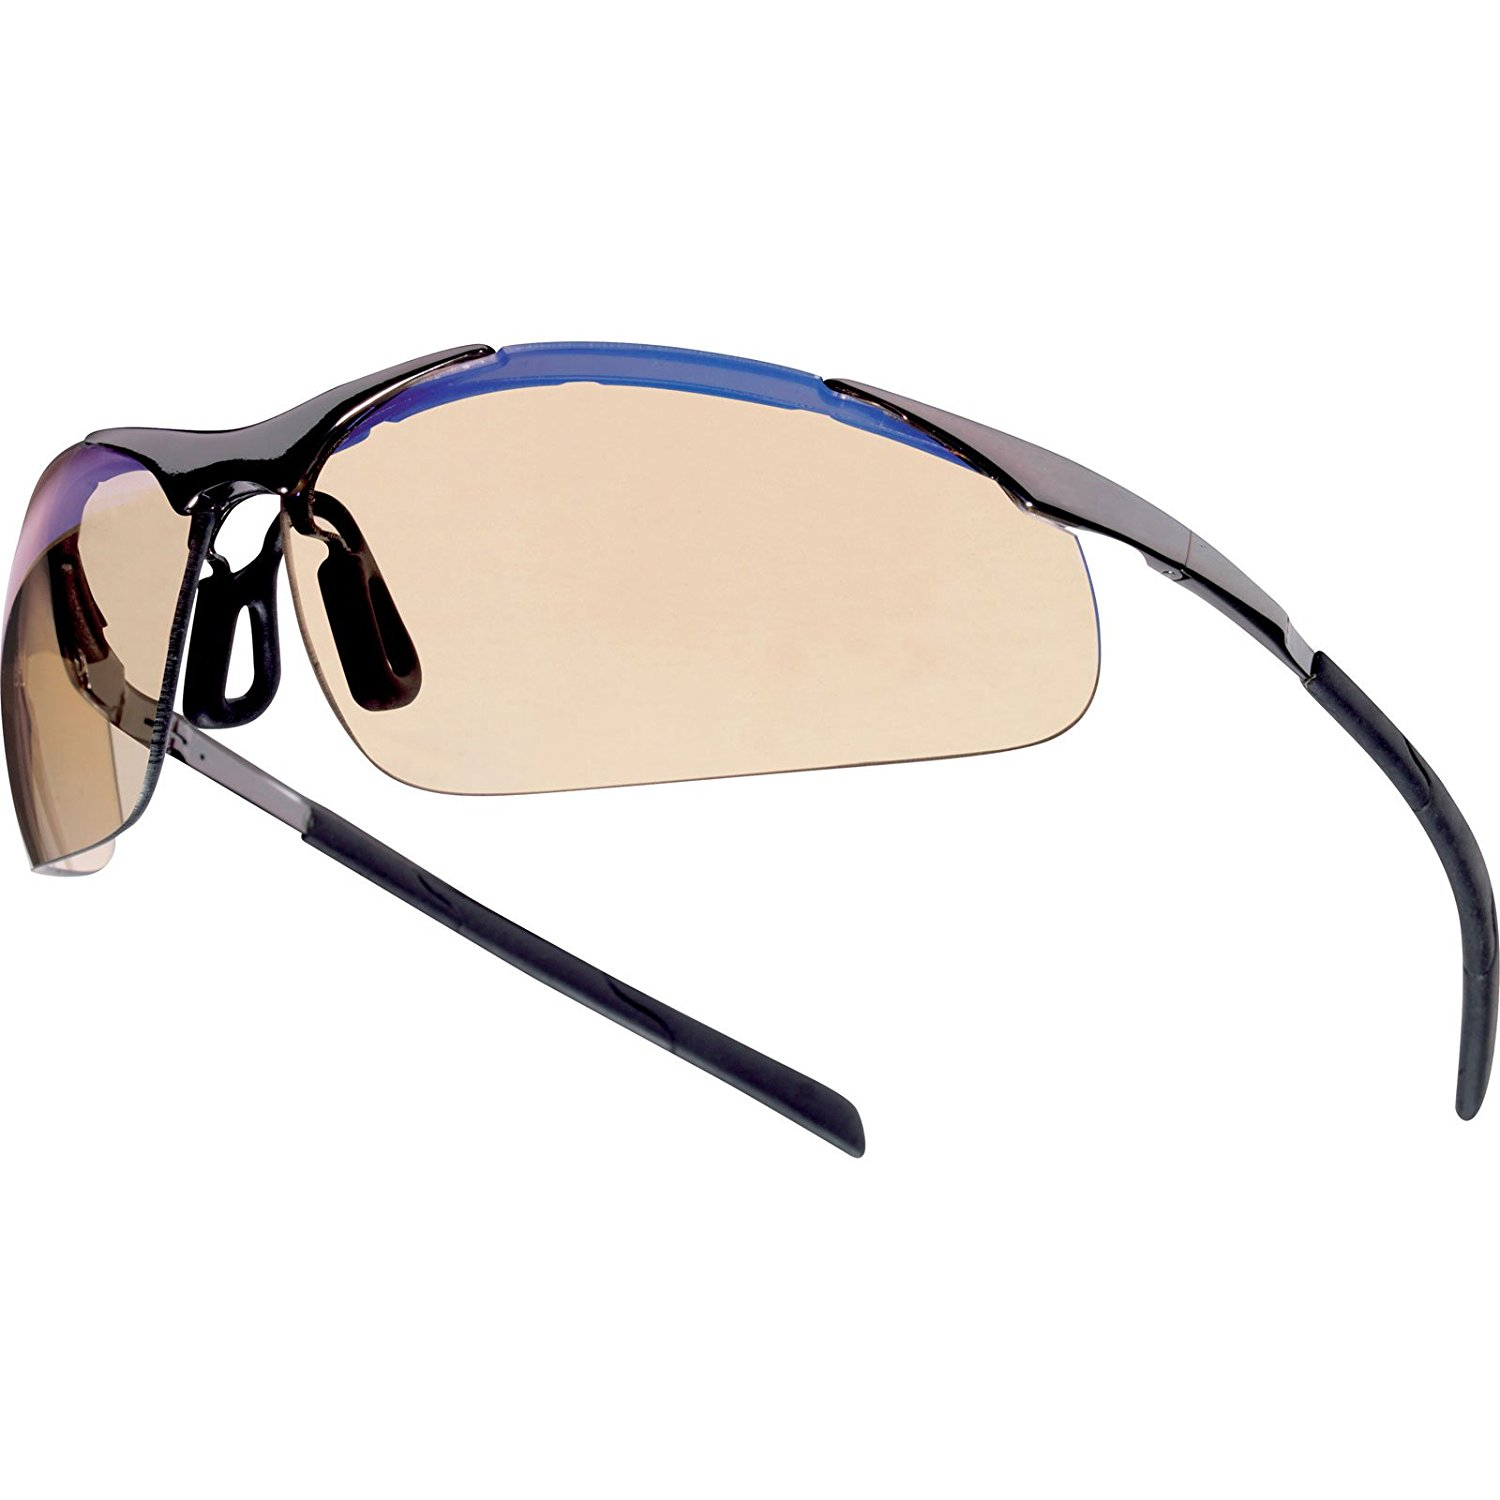 47aa5b650b Get Quotations · Bolle - Bolle - Bolle Safety Glasses Contour Esp - Metal  Frame